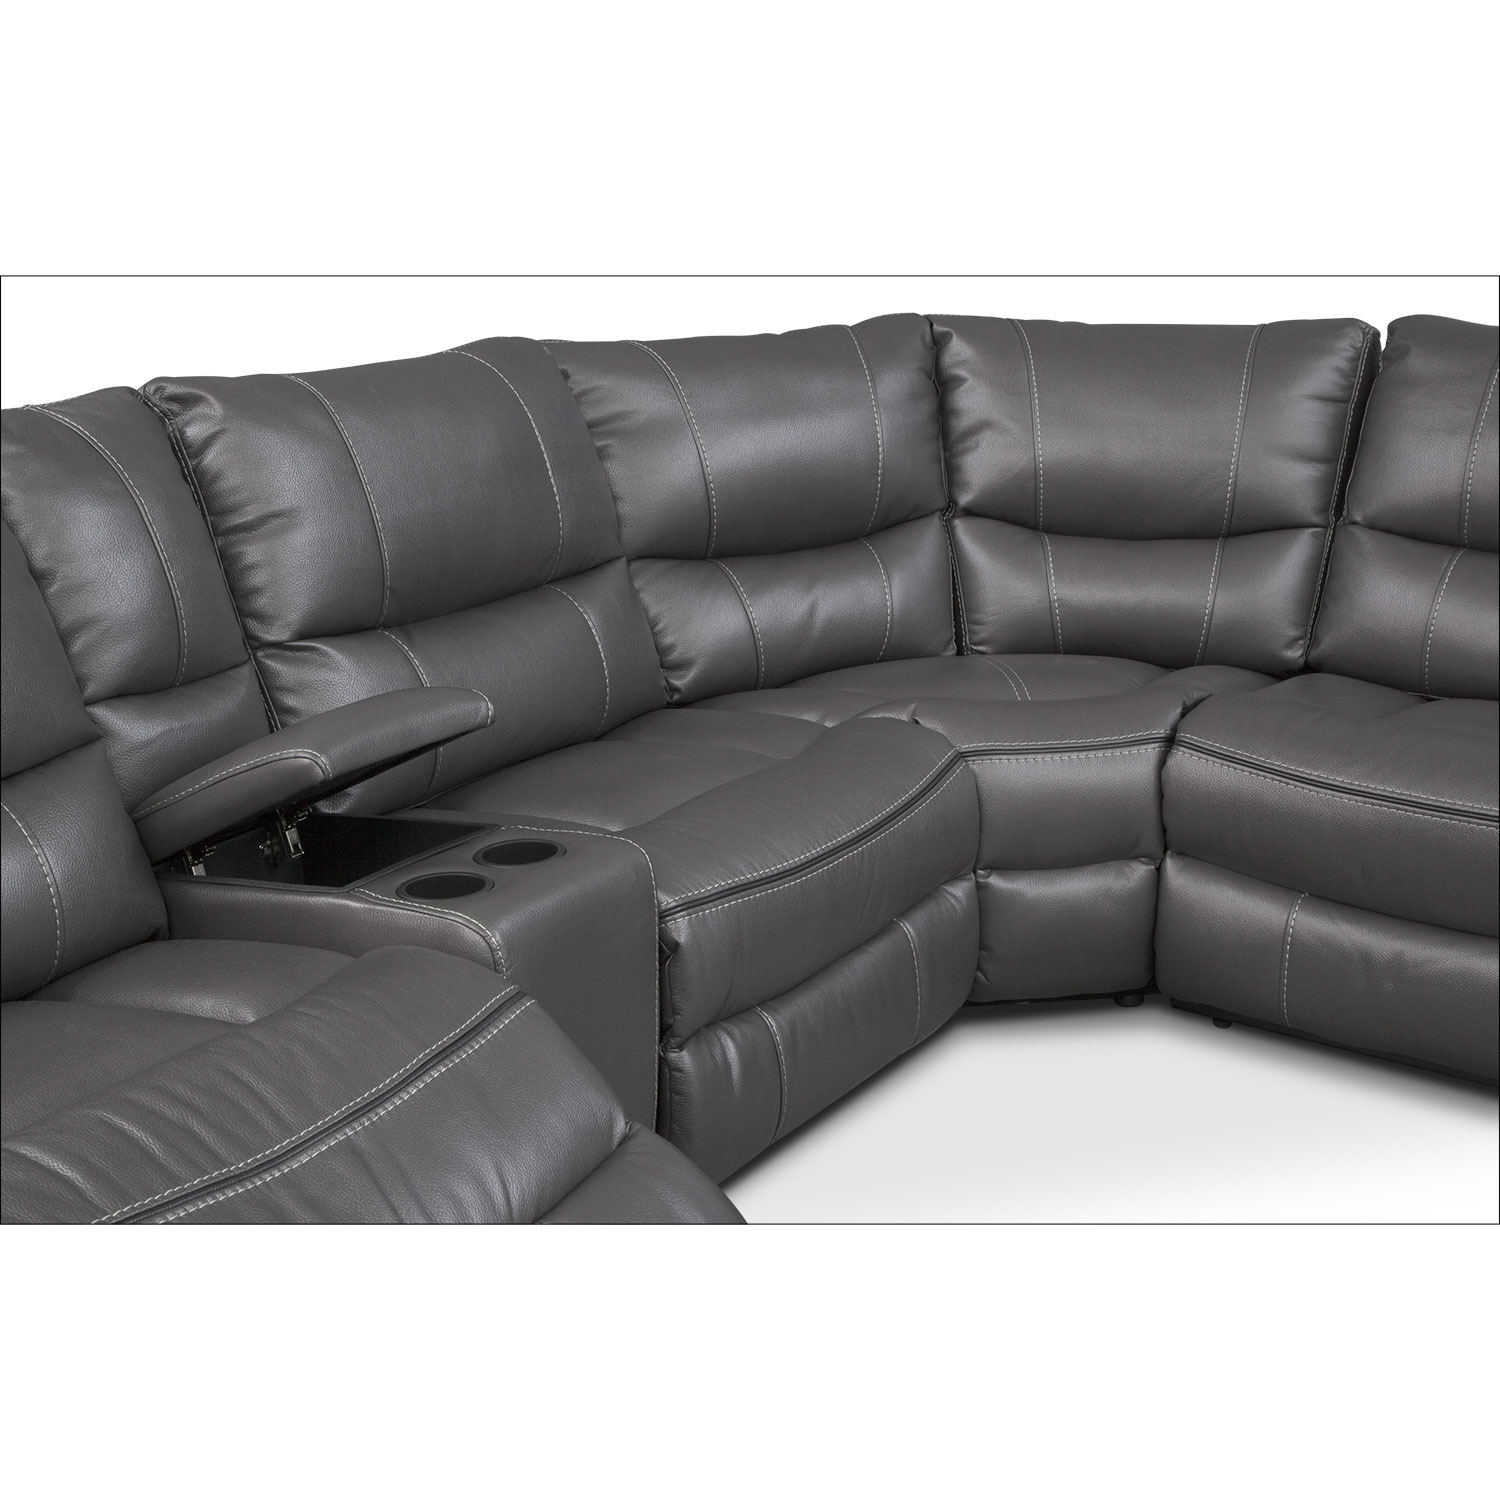 Orlando 6 Piece Power Reclining Sectional With 1 Stationary Chair In Orlando Sectional Sofas (View 6 of 10)